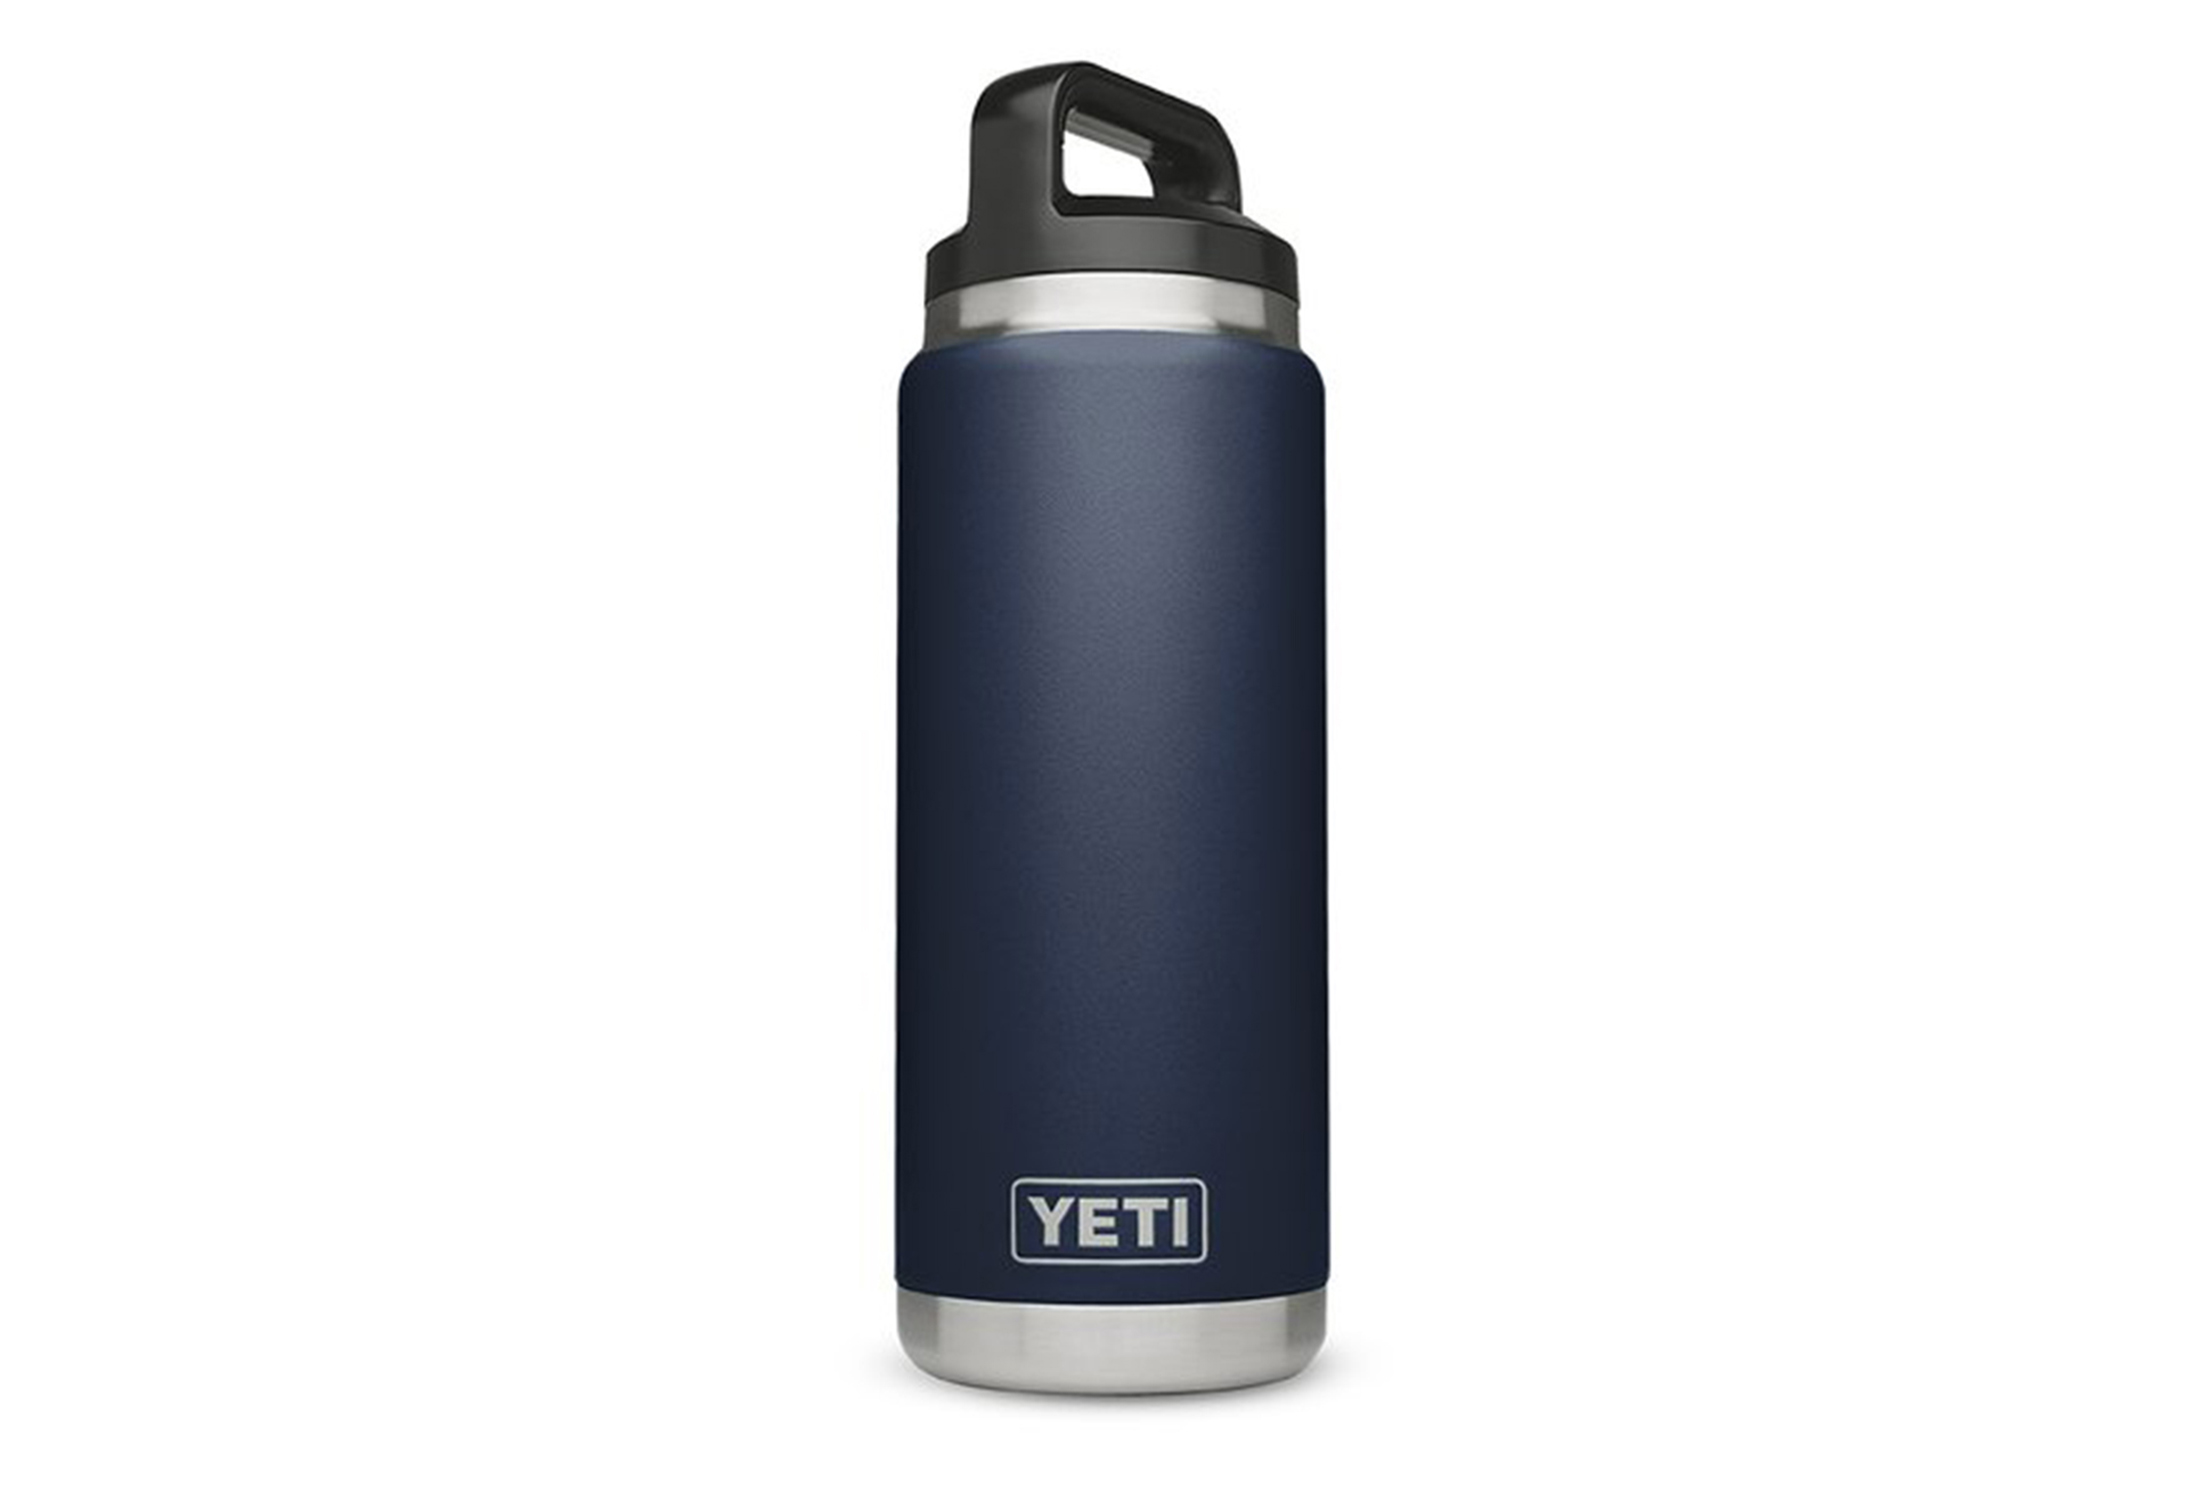 YETI Rambler bottle